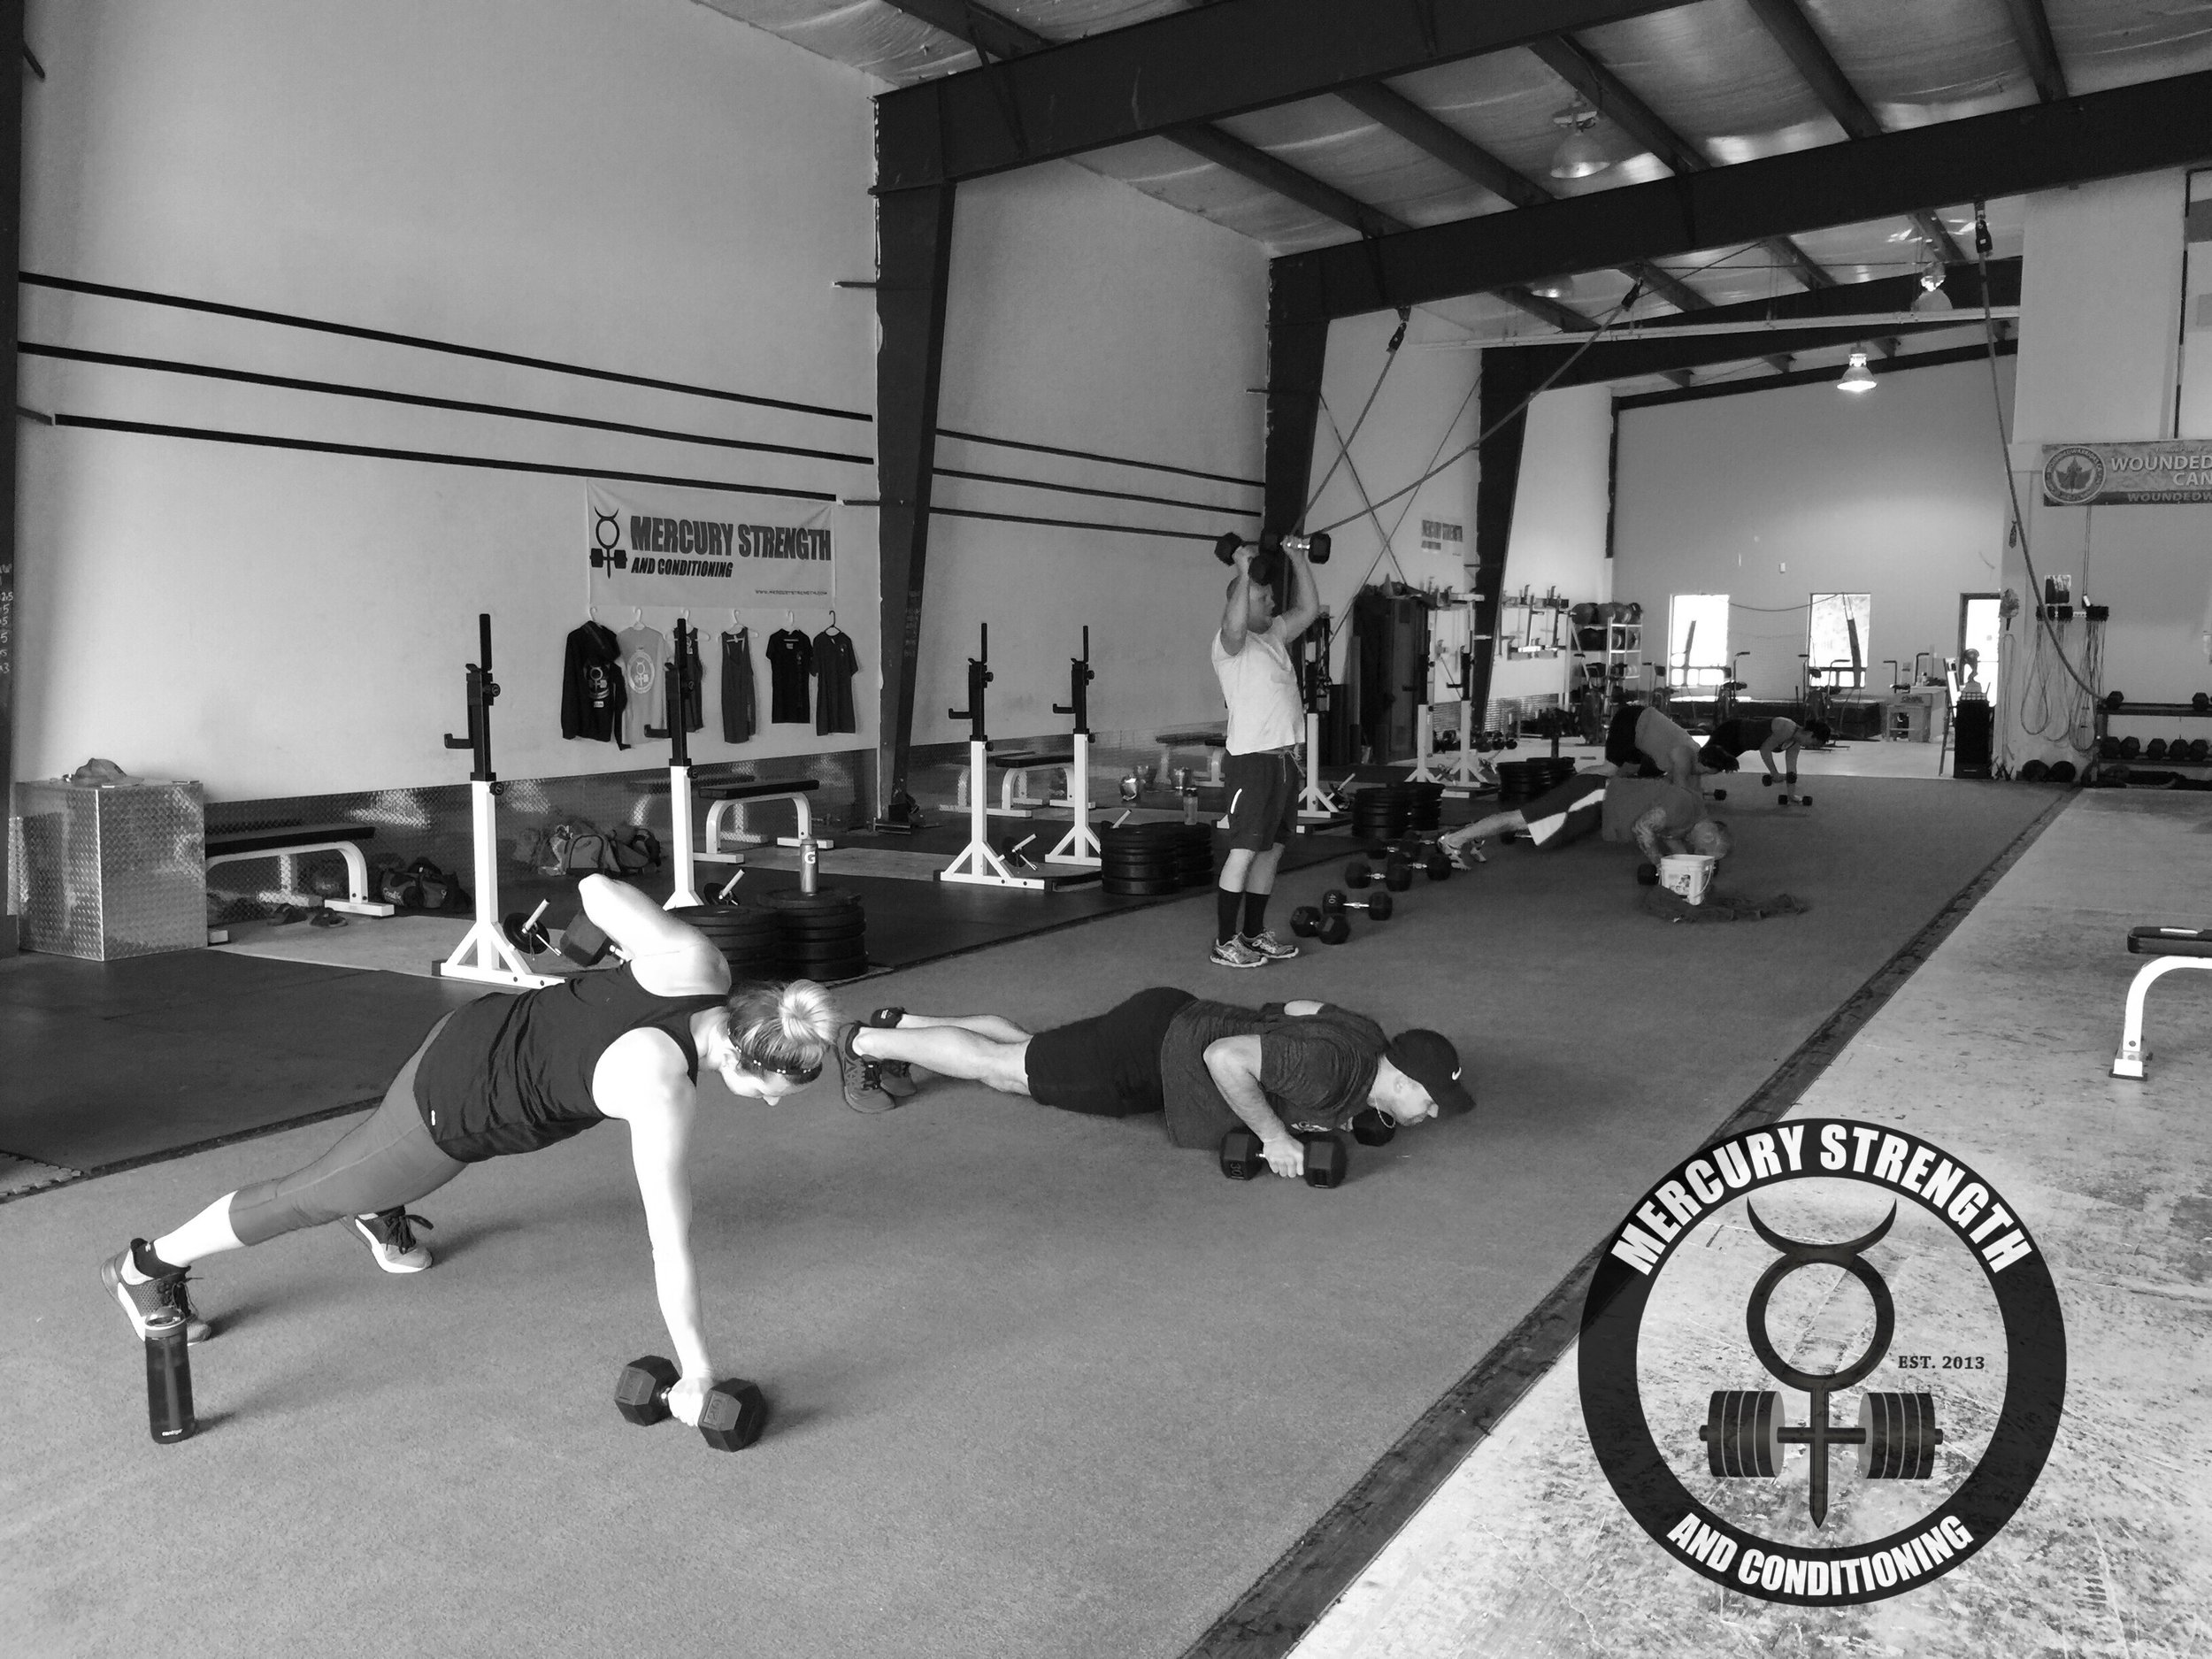 Some of the 09:30 crew during the mutant burpee portion of the workout